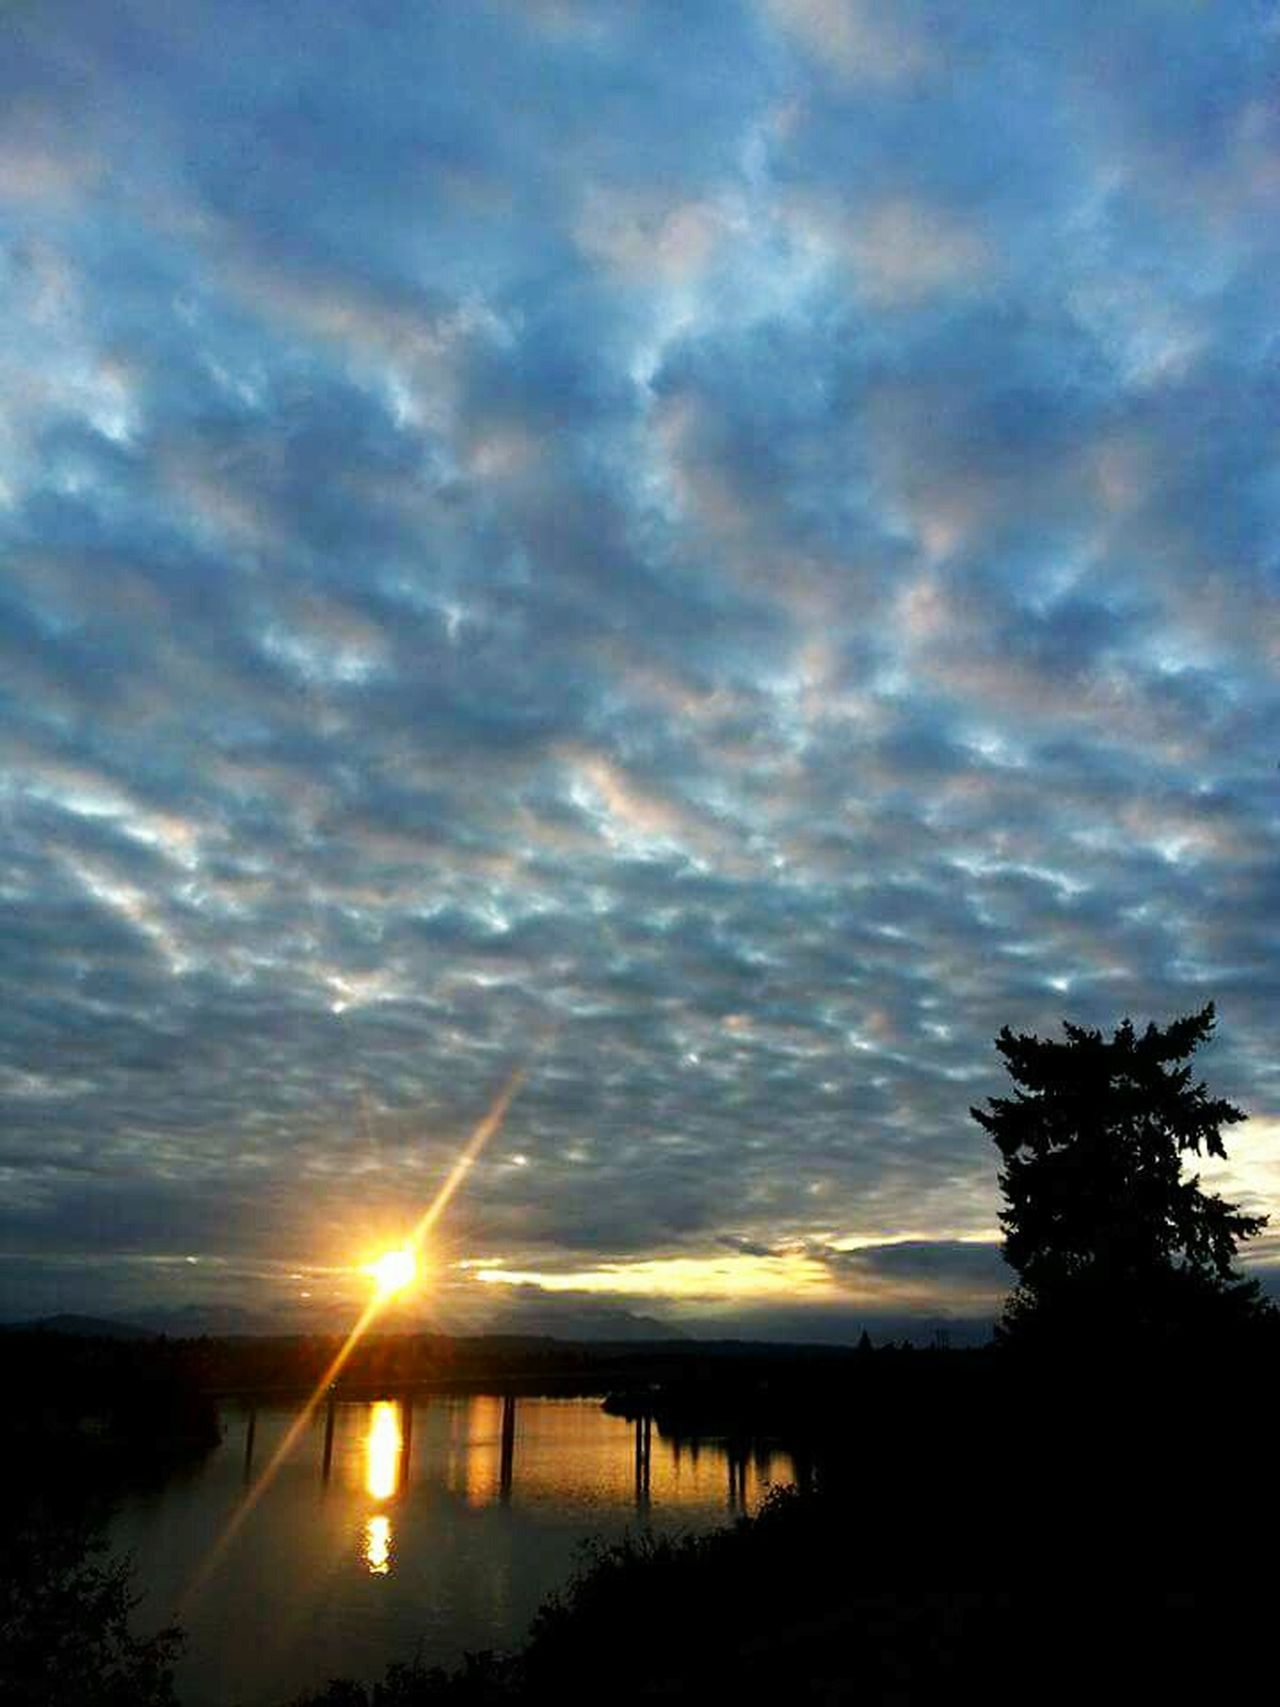 EpicShotPhotography NaturesNirvana Sunset_collection Showcase March Sunset_hub Getty X EyeEm EyeEm Gallery EyeEm Nature Lover Gettyimage Q13spring Urban Spring Fever Getty X EyeEm Images Wild & Pure Epic Shot Photography Washington State Nature_collection Landscape_collection EyeEmNatureLover Sun_collection, Sky_collection, Cloudporn, Skyporn Northwestsunsets Nationalgeographic EyeEmxGettyImages Getty Images Springtime ,march Showcase Northwestnaturetrek Washingtonstate Gettyimagesgallery